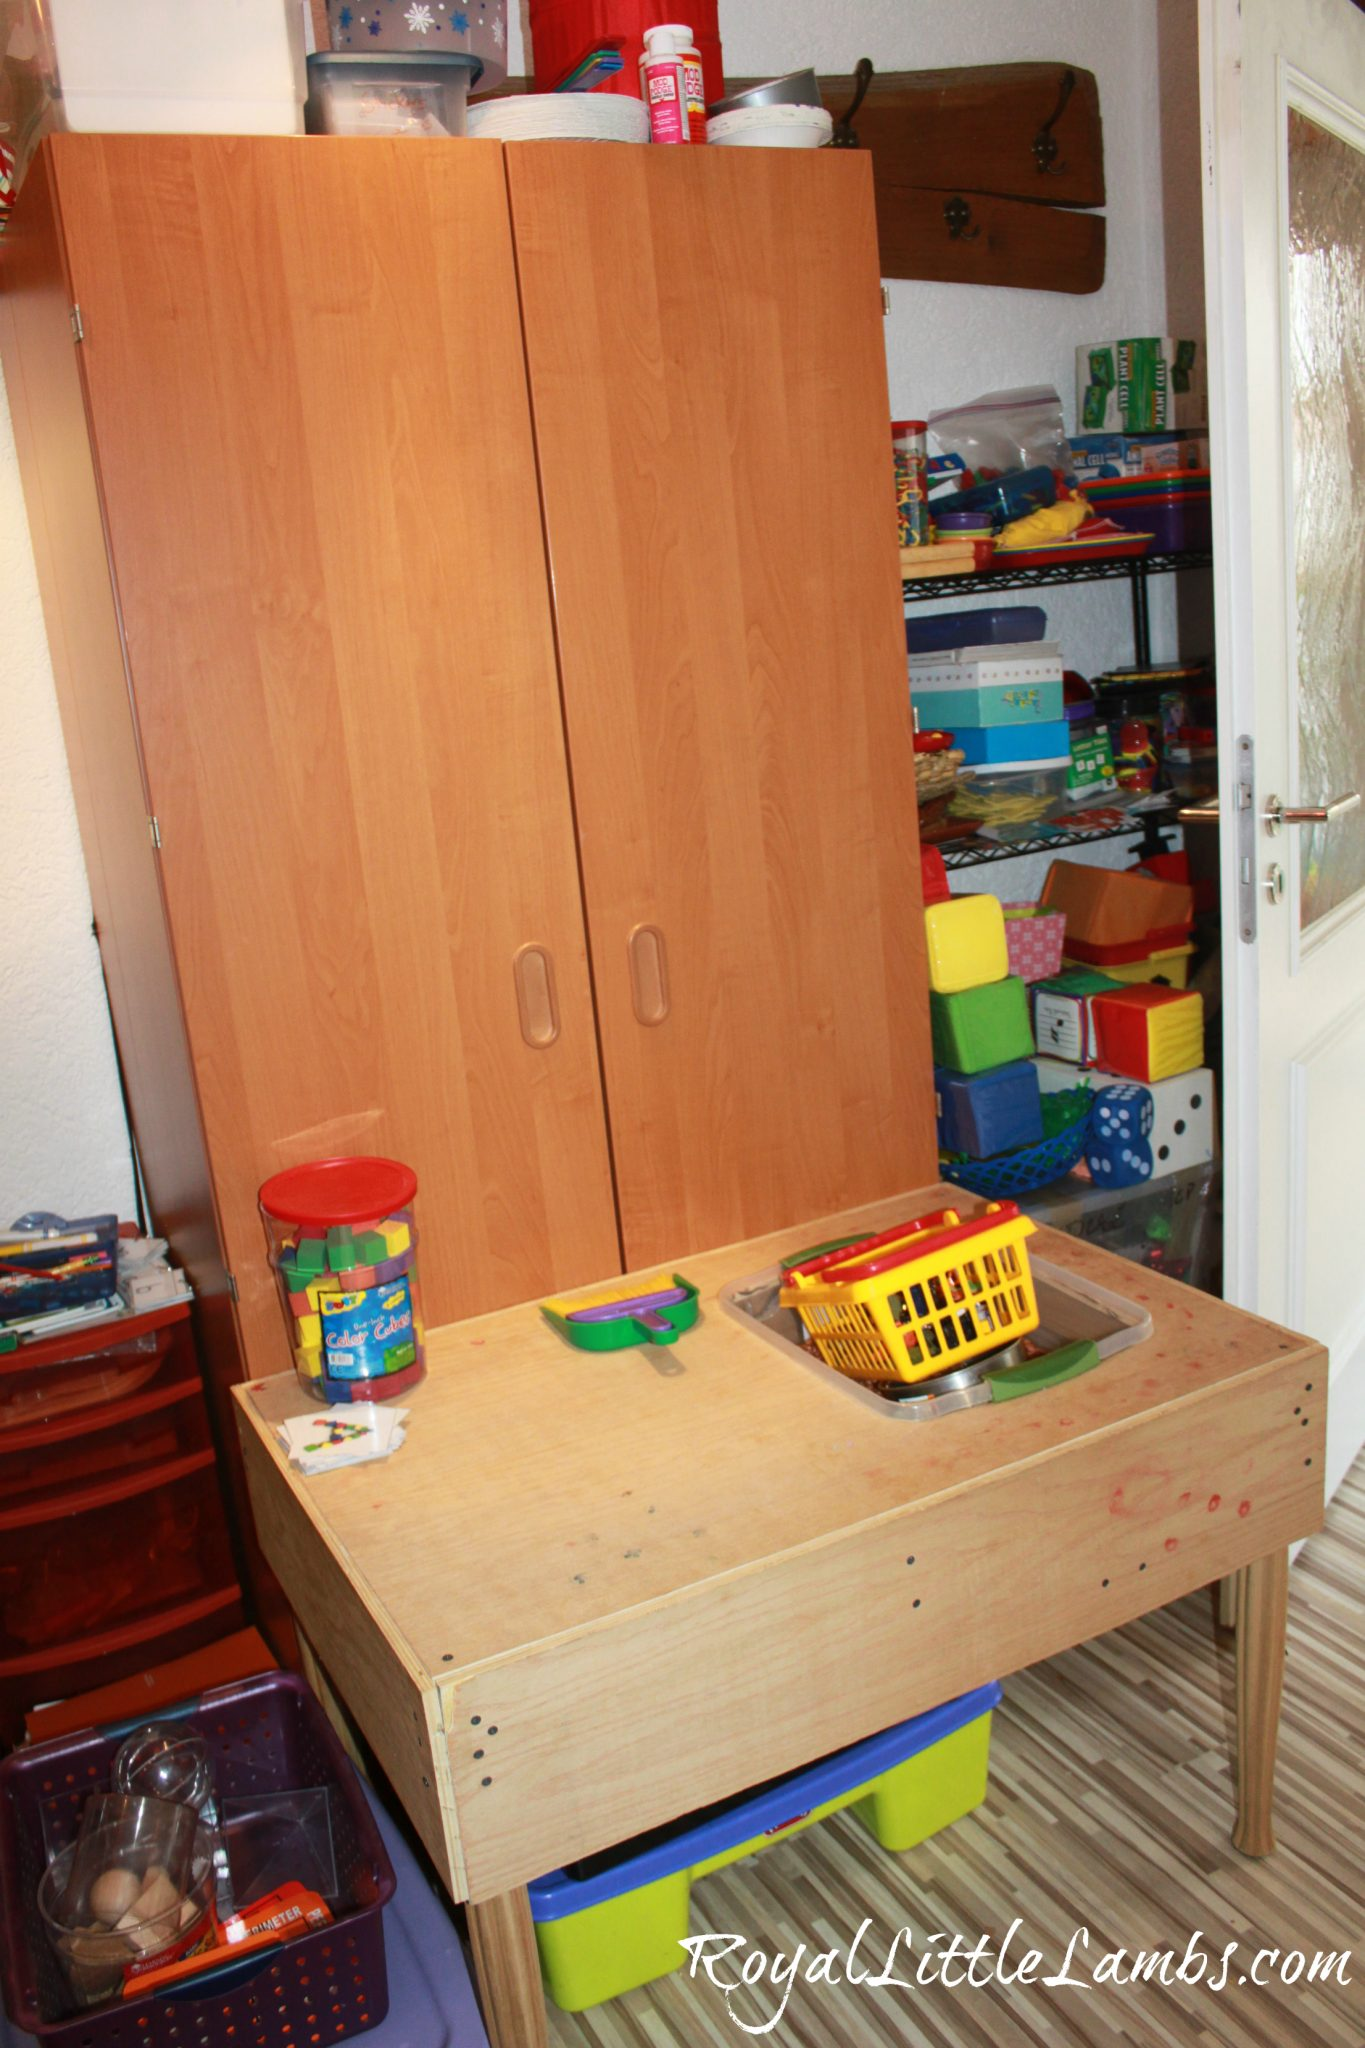 schrank and shelves